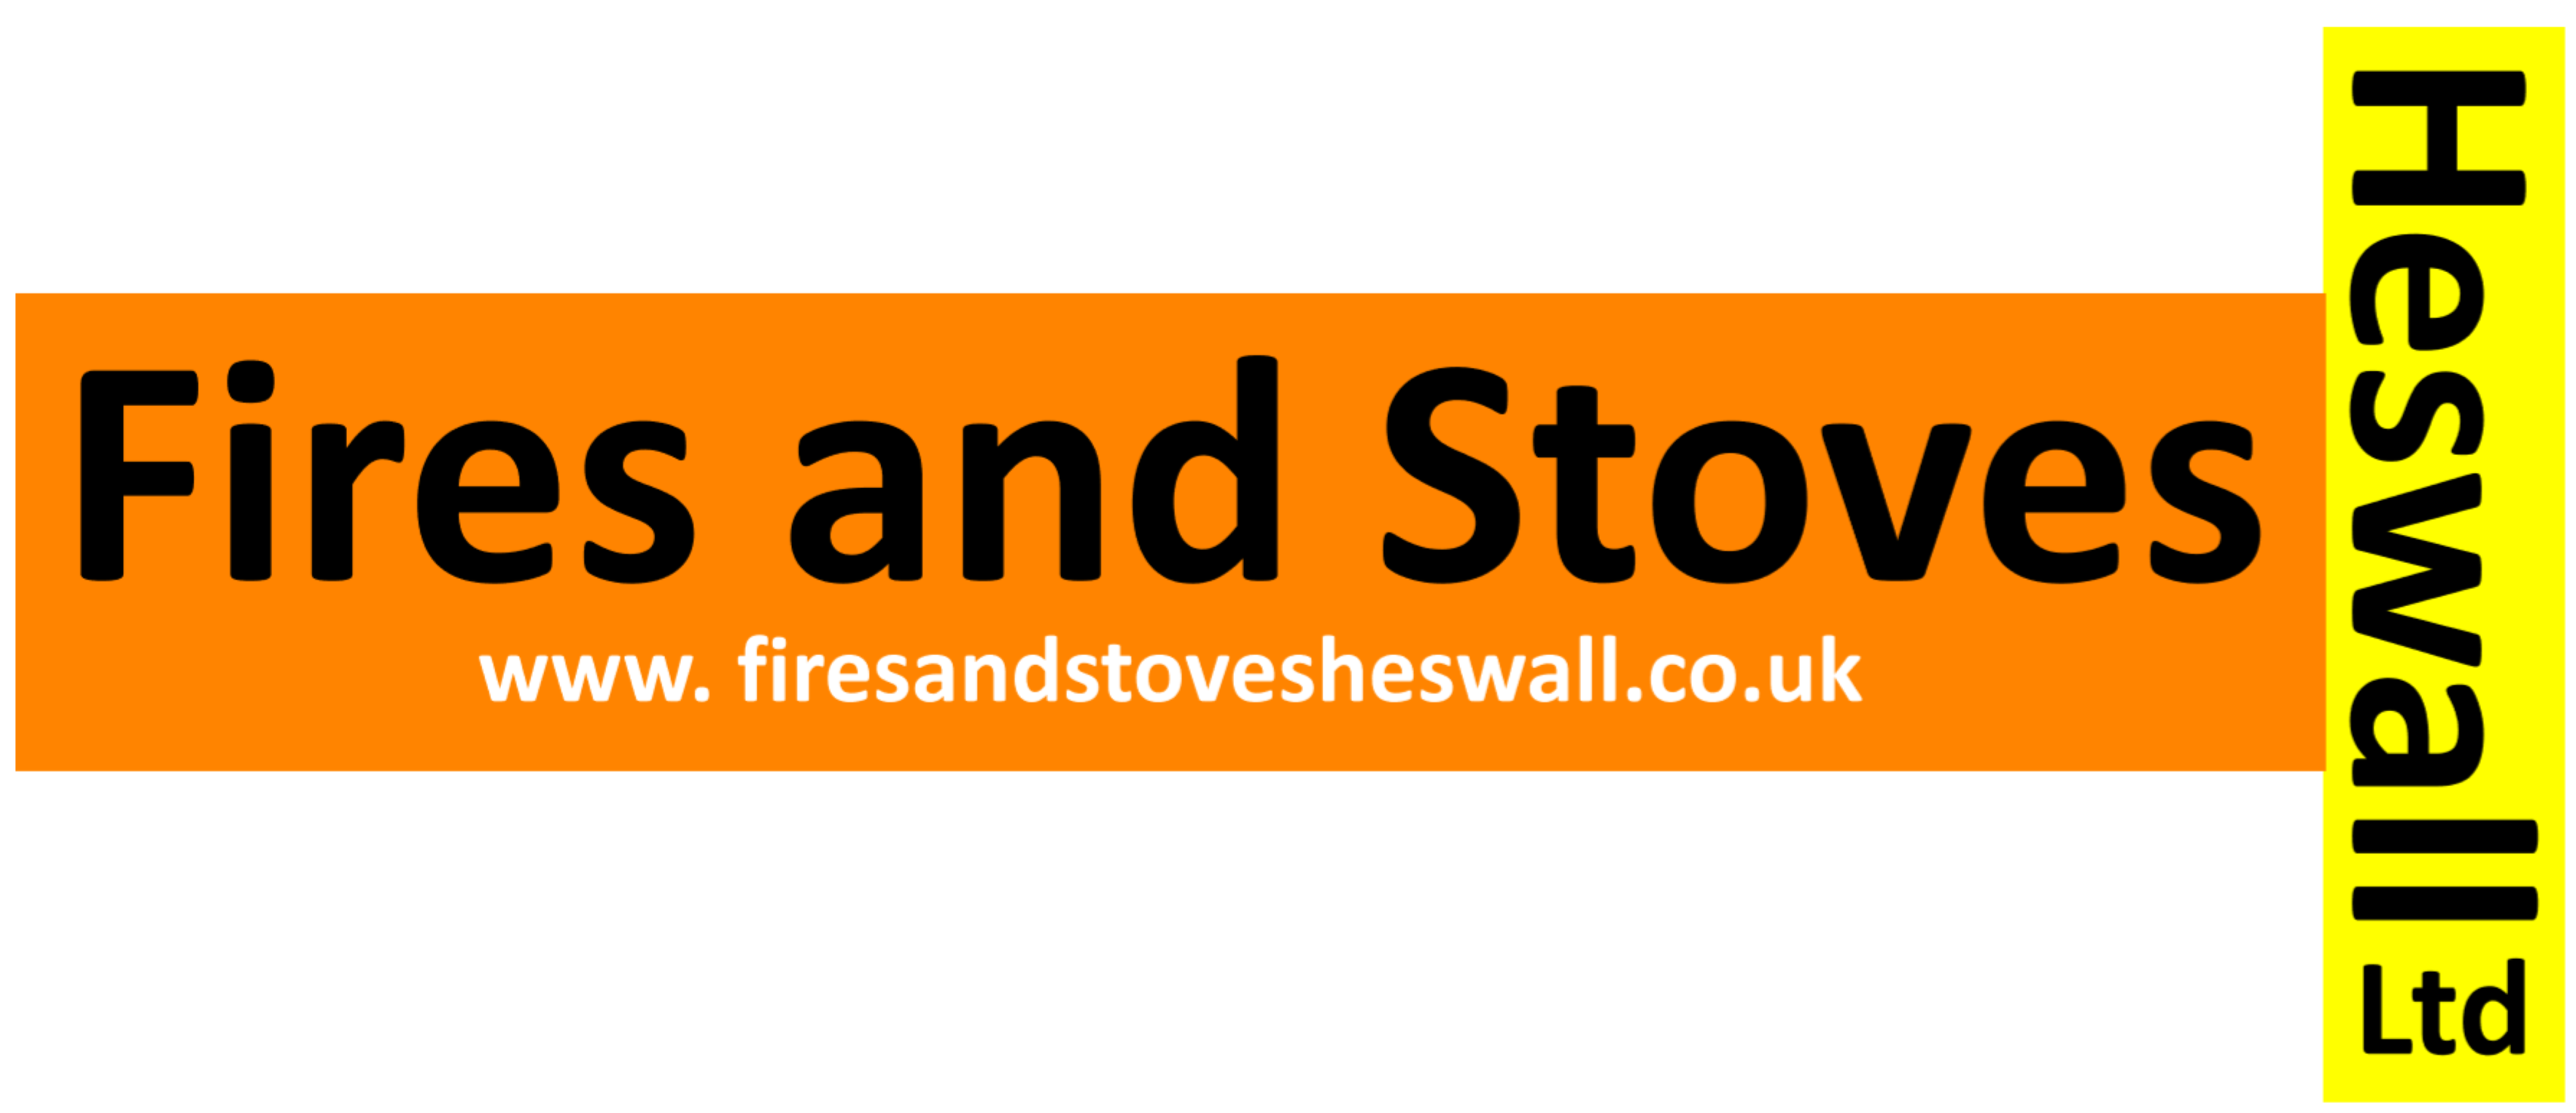 Fires and Stoves Heswall